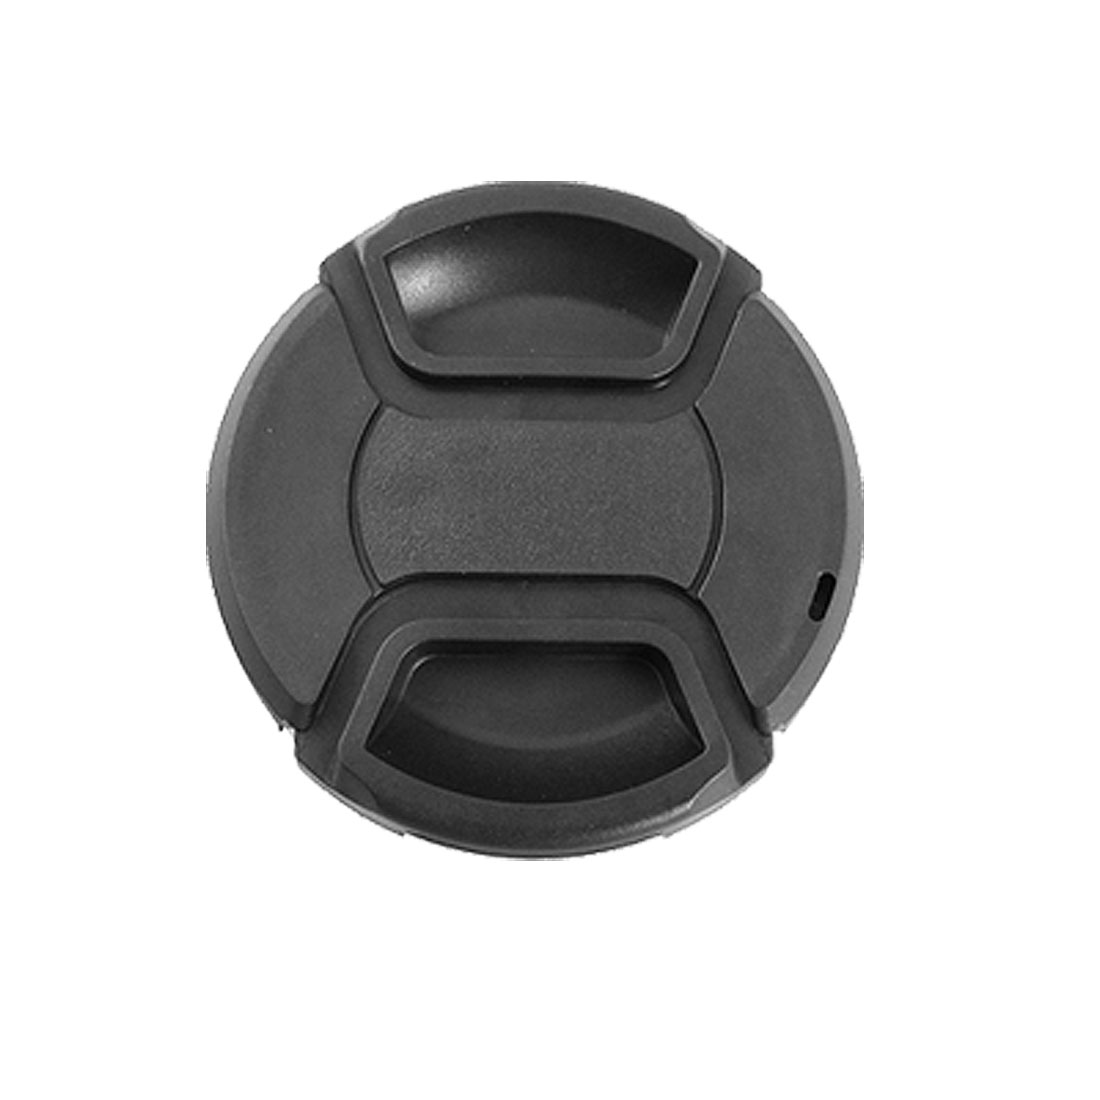 Univeral 55mm Center Pinch Snap Front Lens Cap Hood Cover